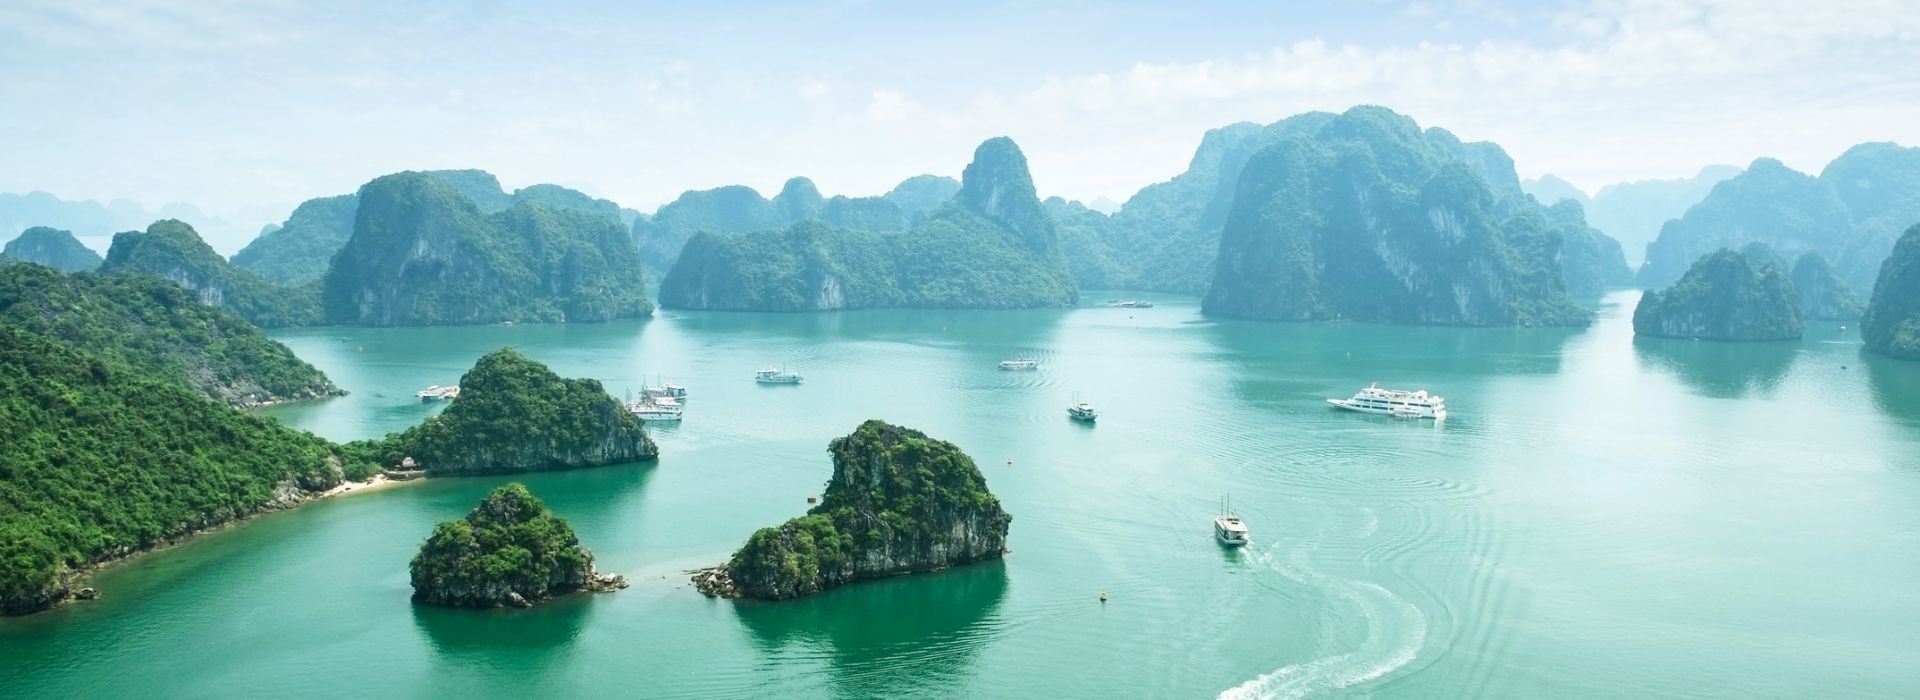 Kayaking and canoeing Tours in Ha Long Bay